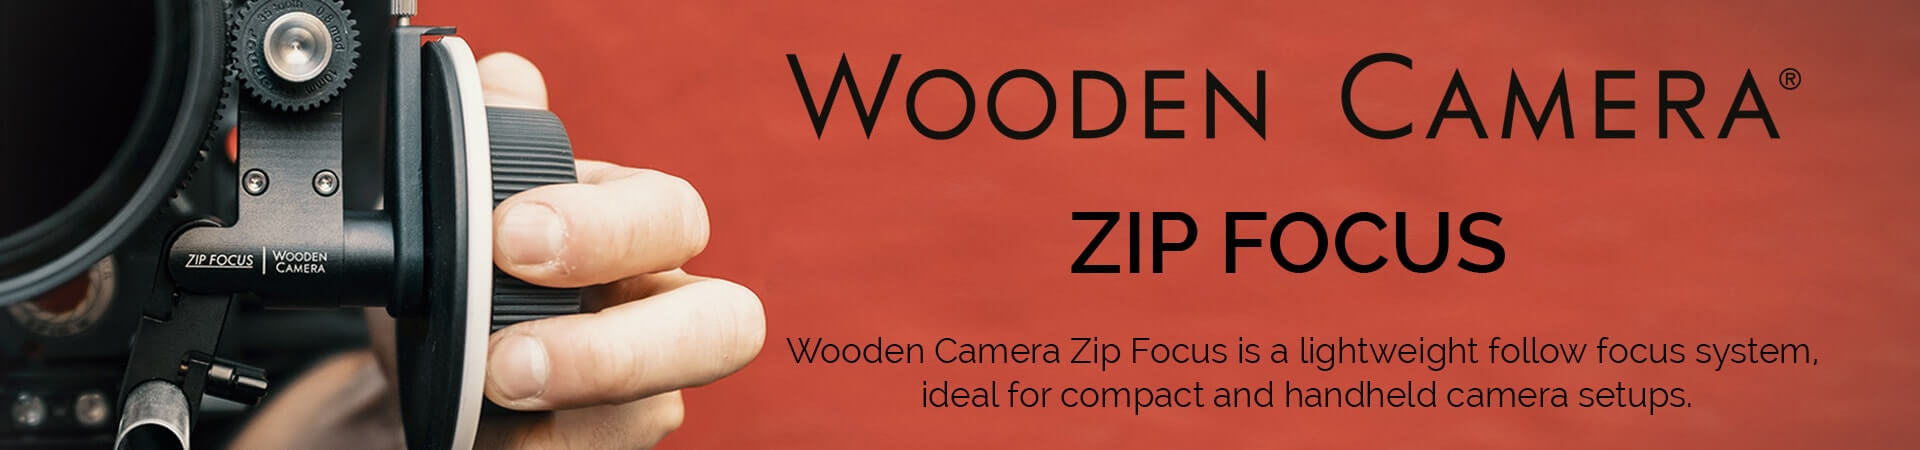 Wooden-Camera-Zip-Focus.jpg